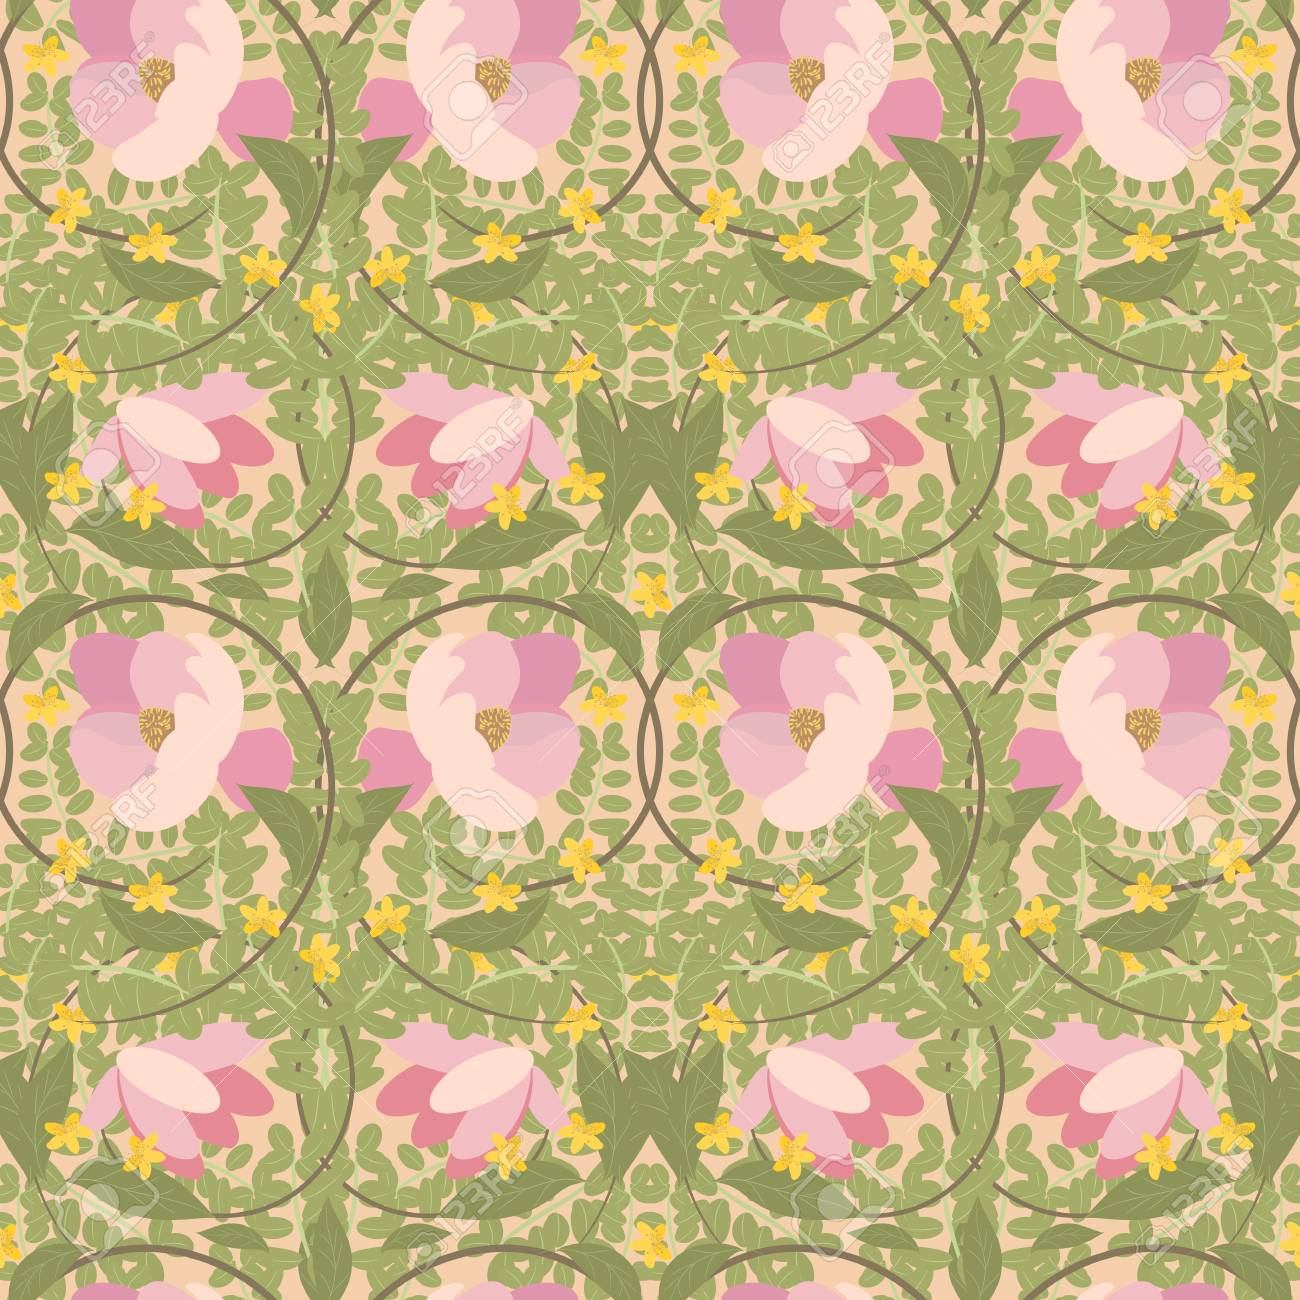 Illustration Vintage Floral Magnolia And St. John's Wort Pattern.. Stock  Photo, Picture And Royalty Free Image. Image 54103859.